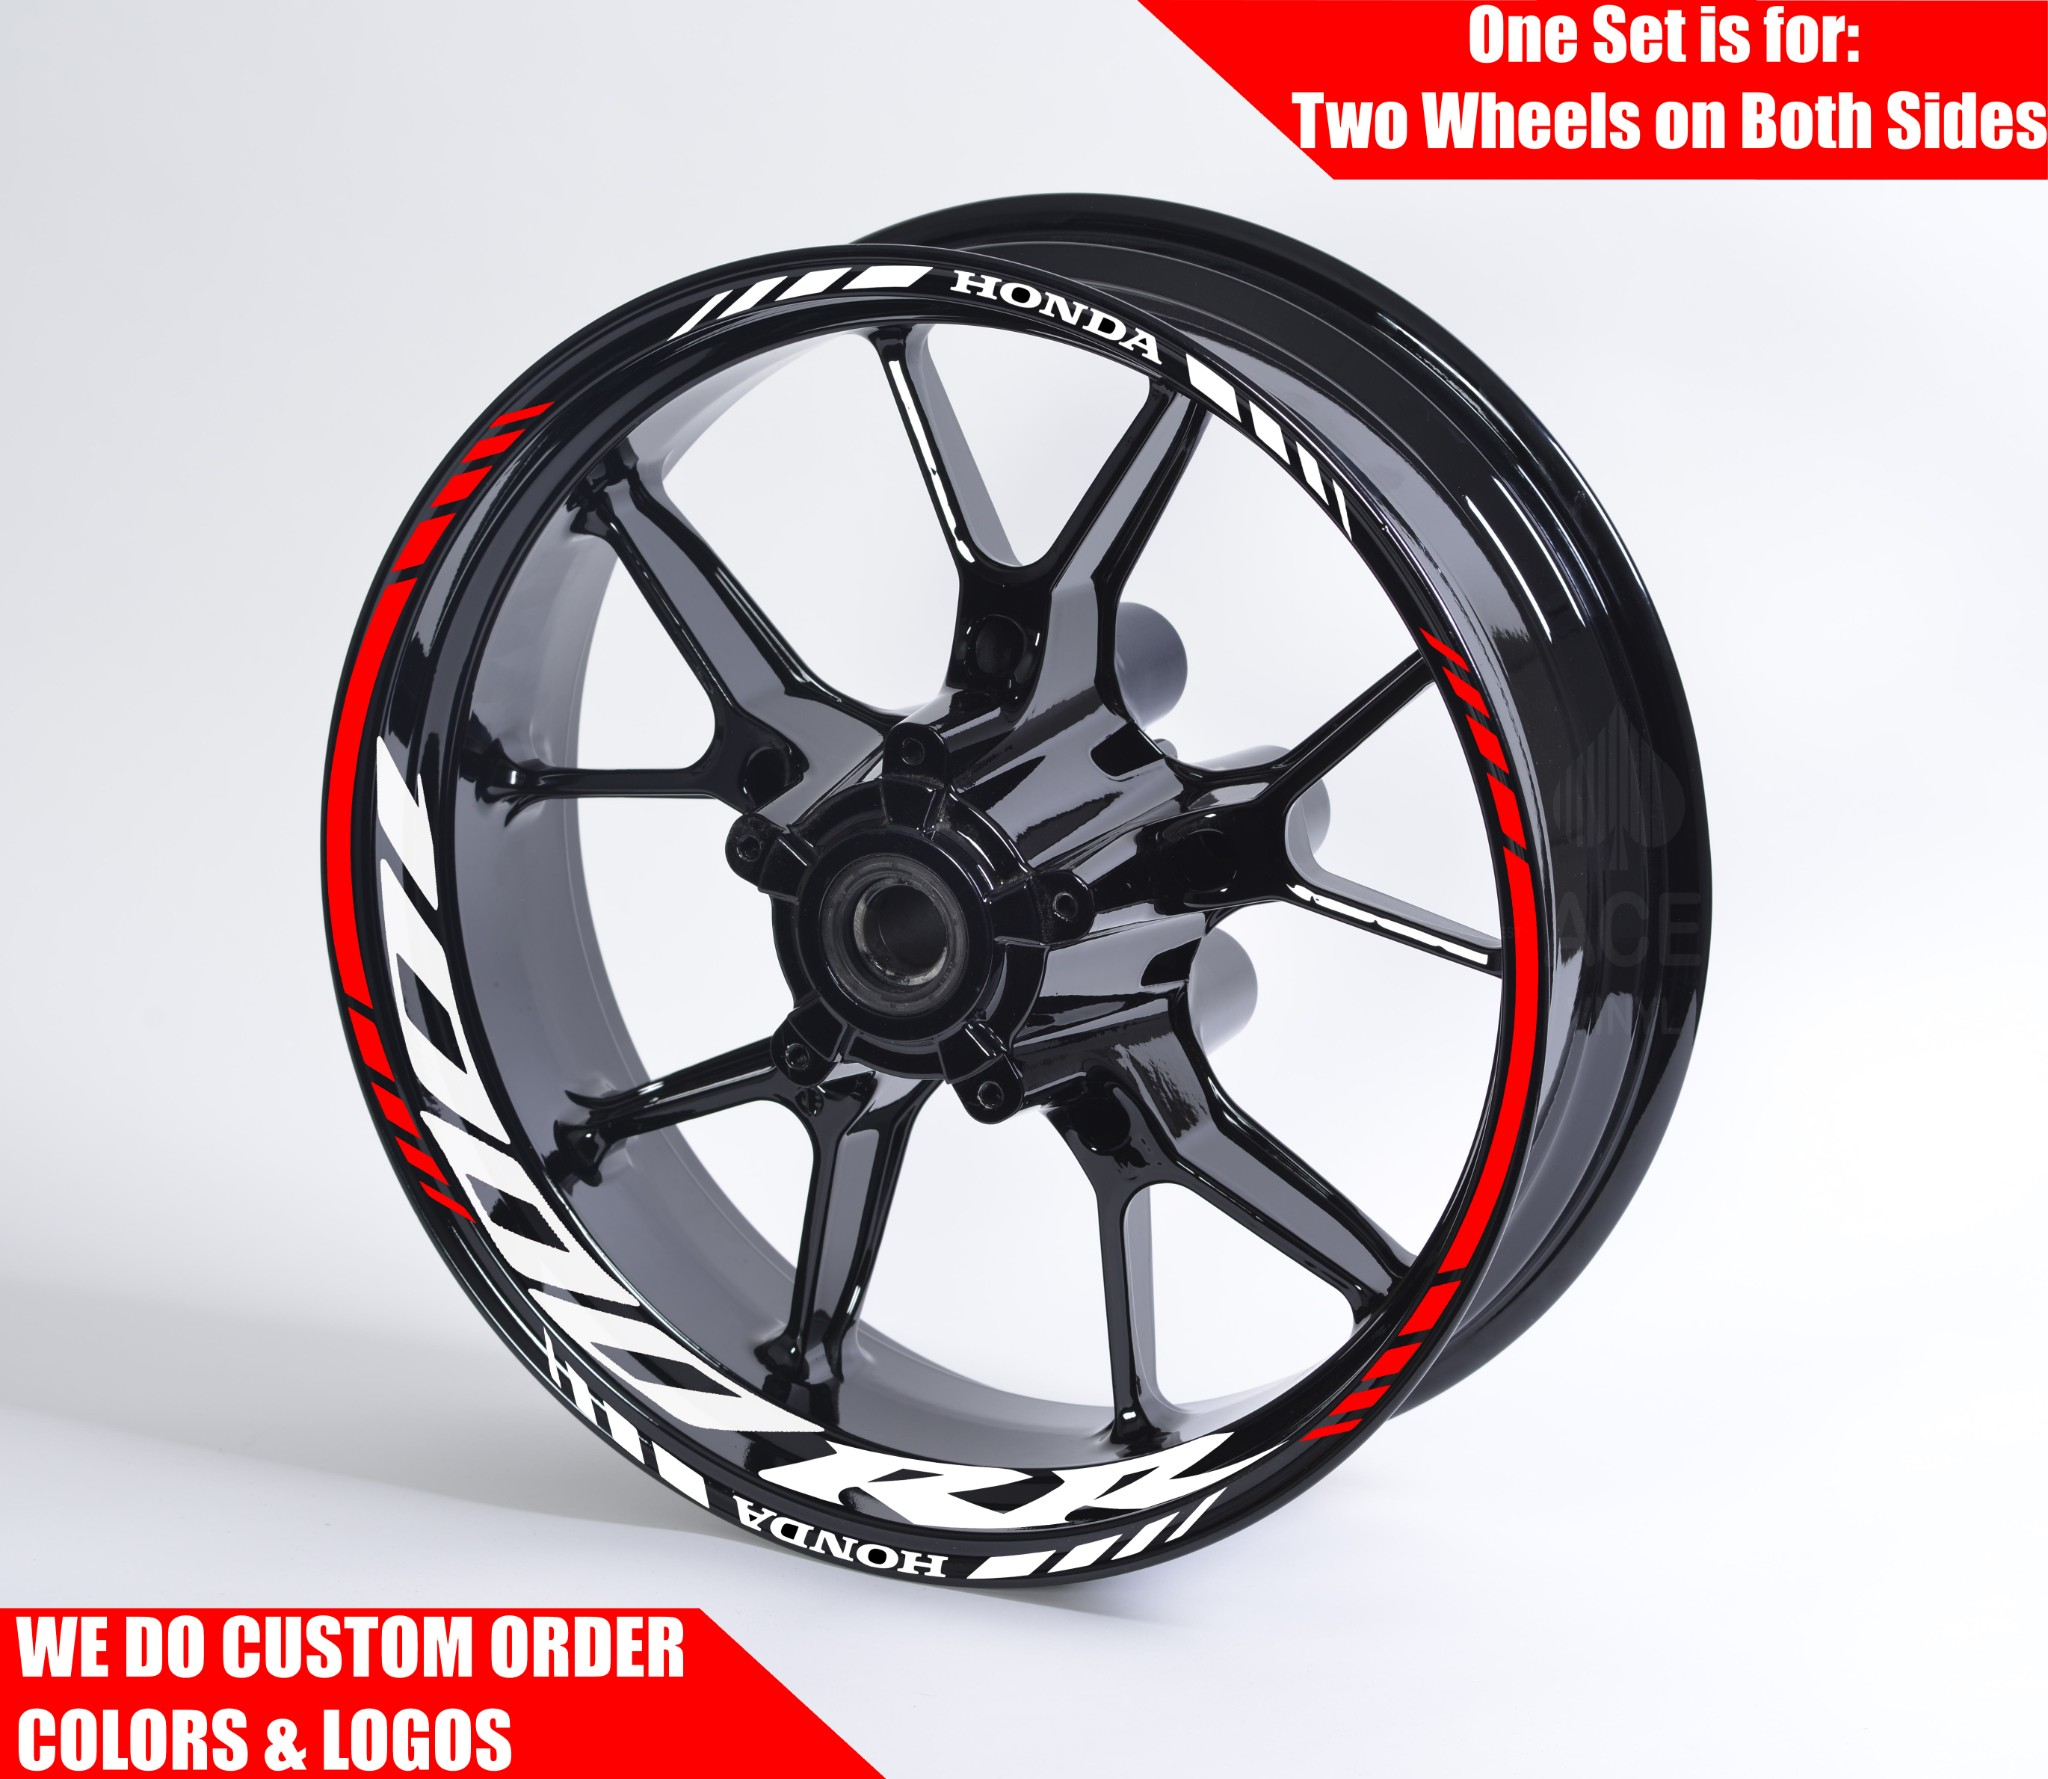 Gloss Red Motorcycle Rim Wheel Decal Accessory Sticker for Honda CBR 1000